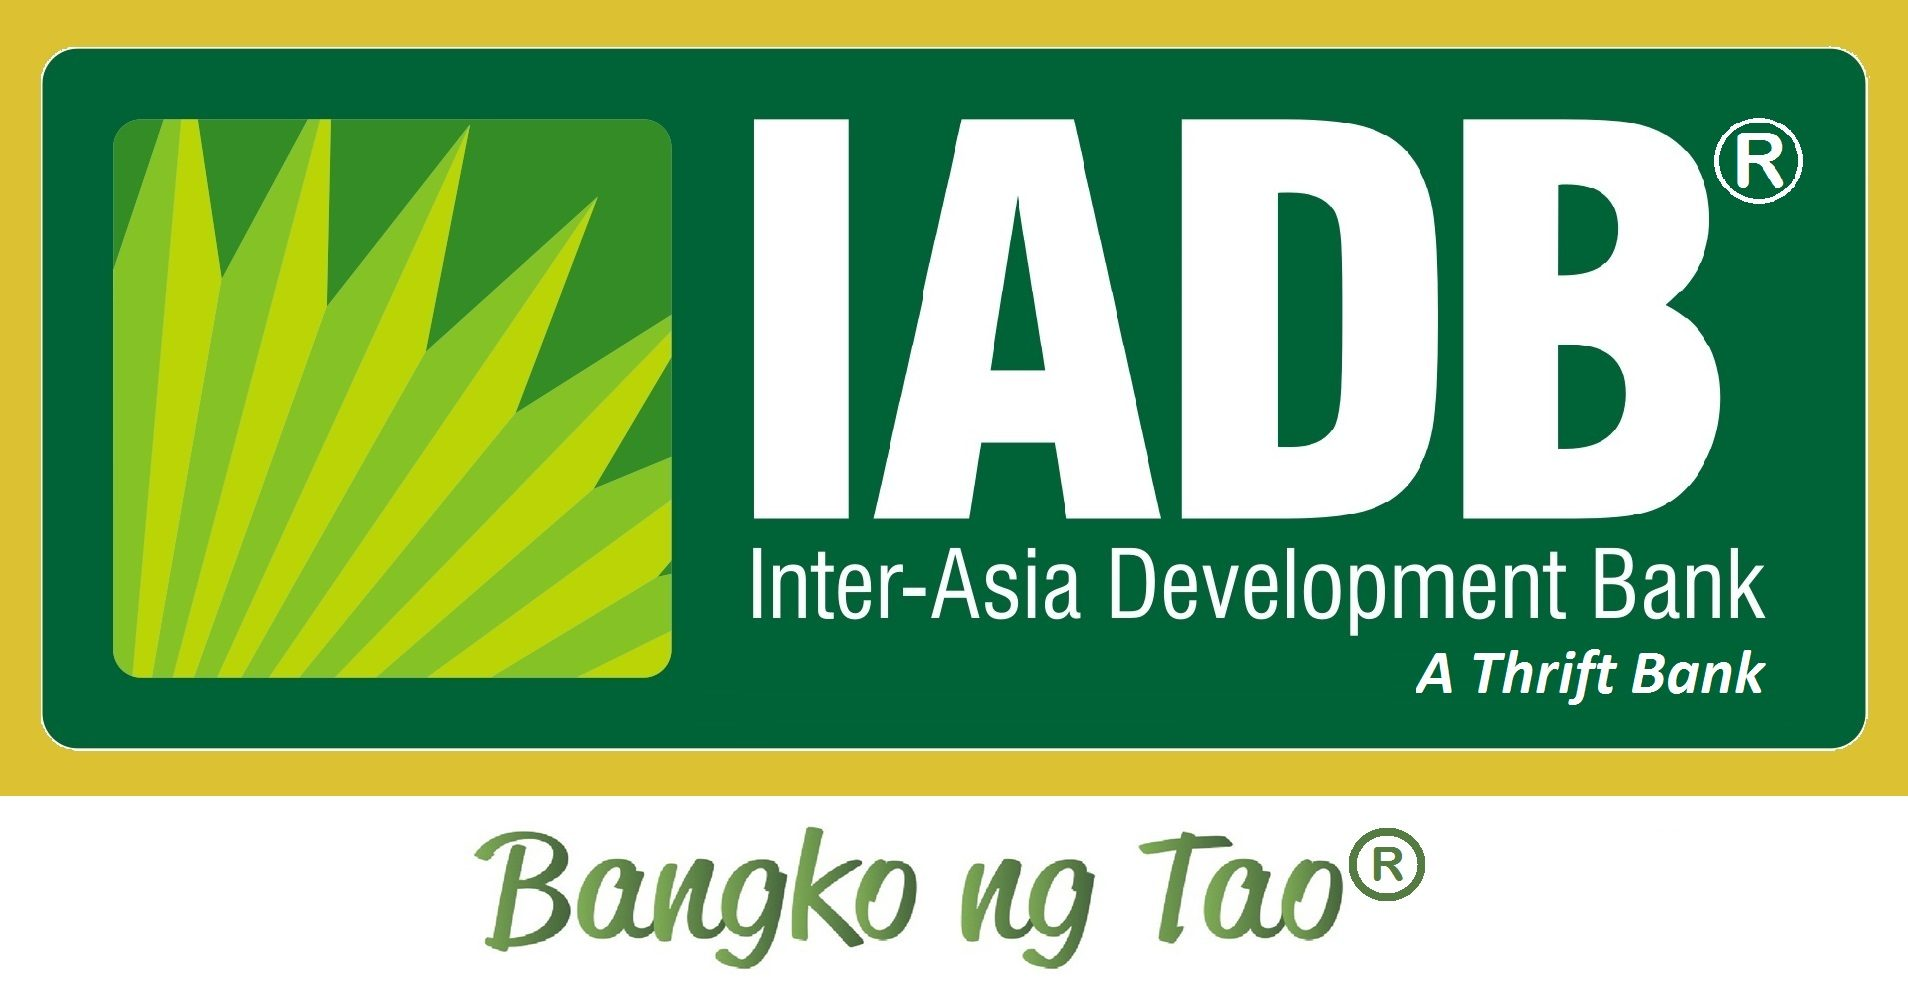 INTER-ASIA DEVELOPMENT BANK